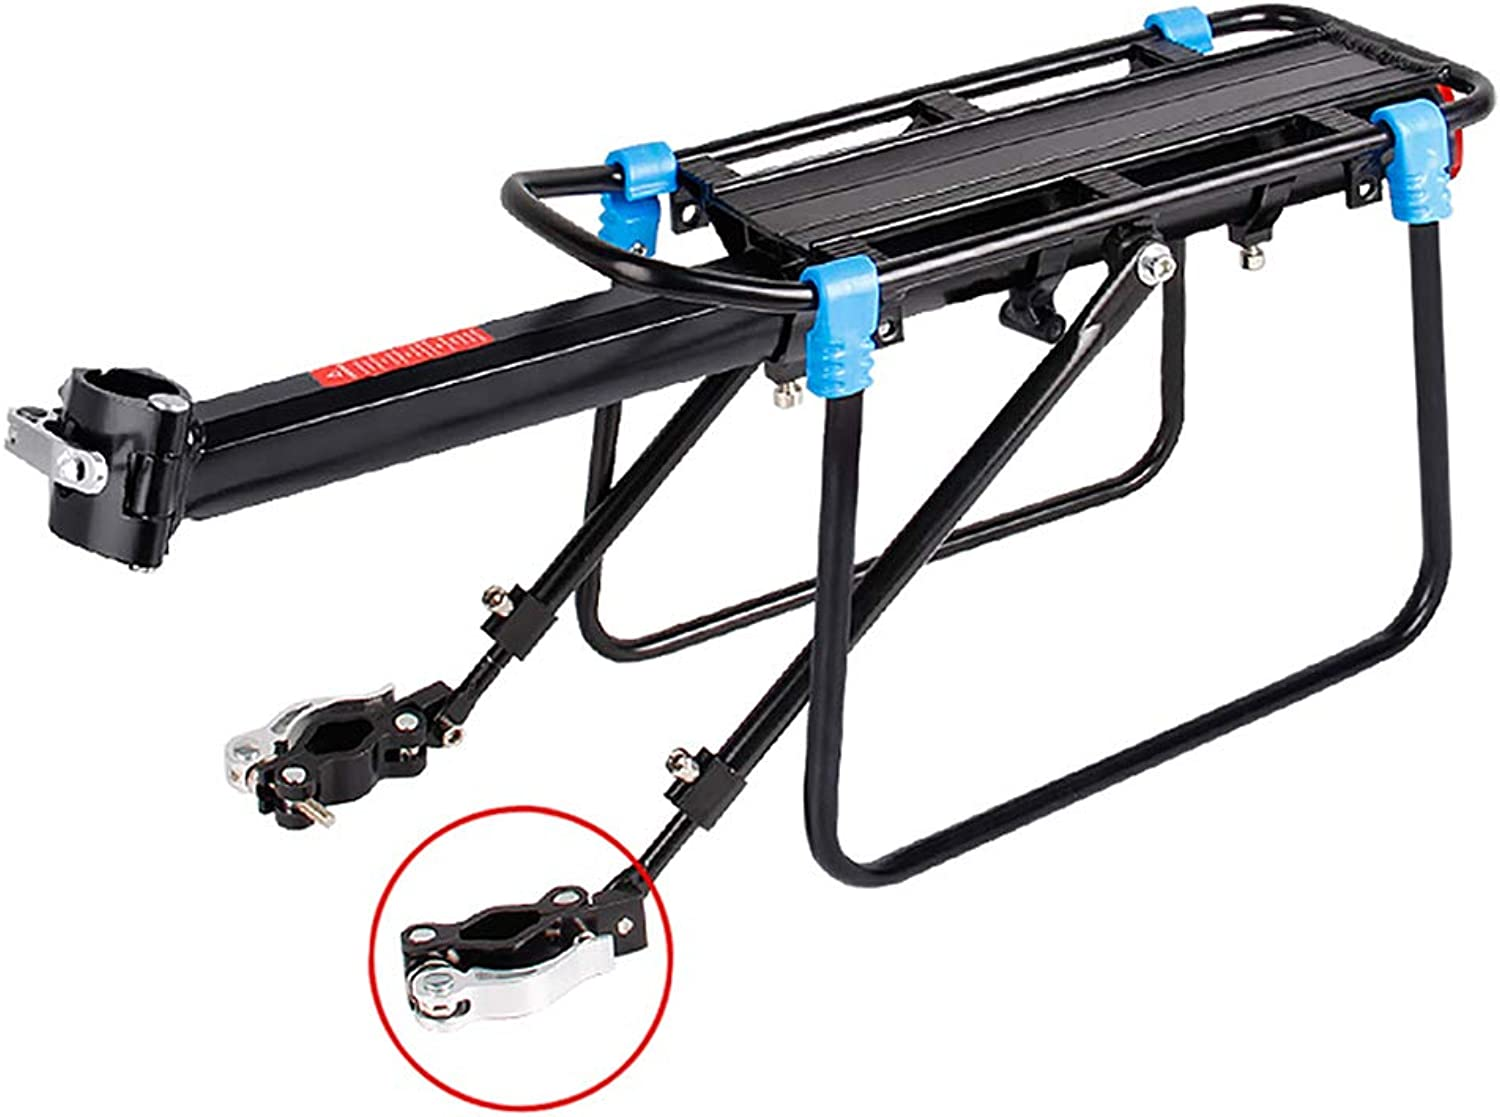 Mountain Bike Rear Frame  LoadBearing 100kg Quick Release Bicycle Rear Shelf can Carry Cargo Convenient Dualuse